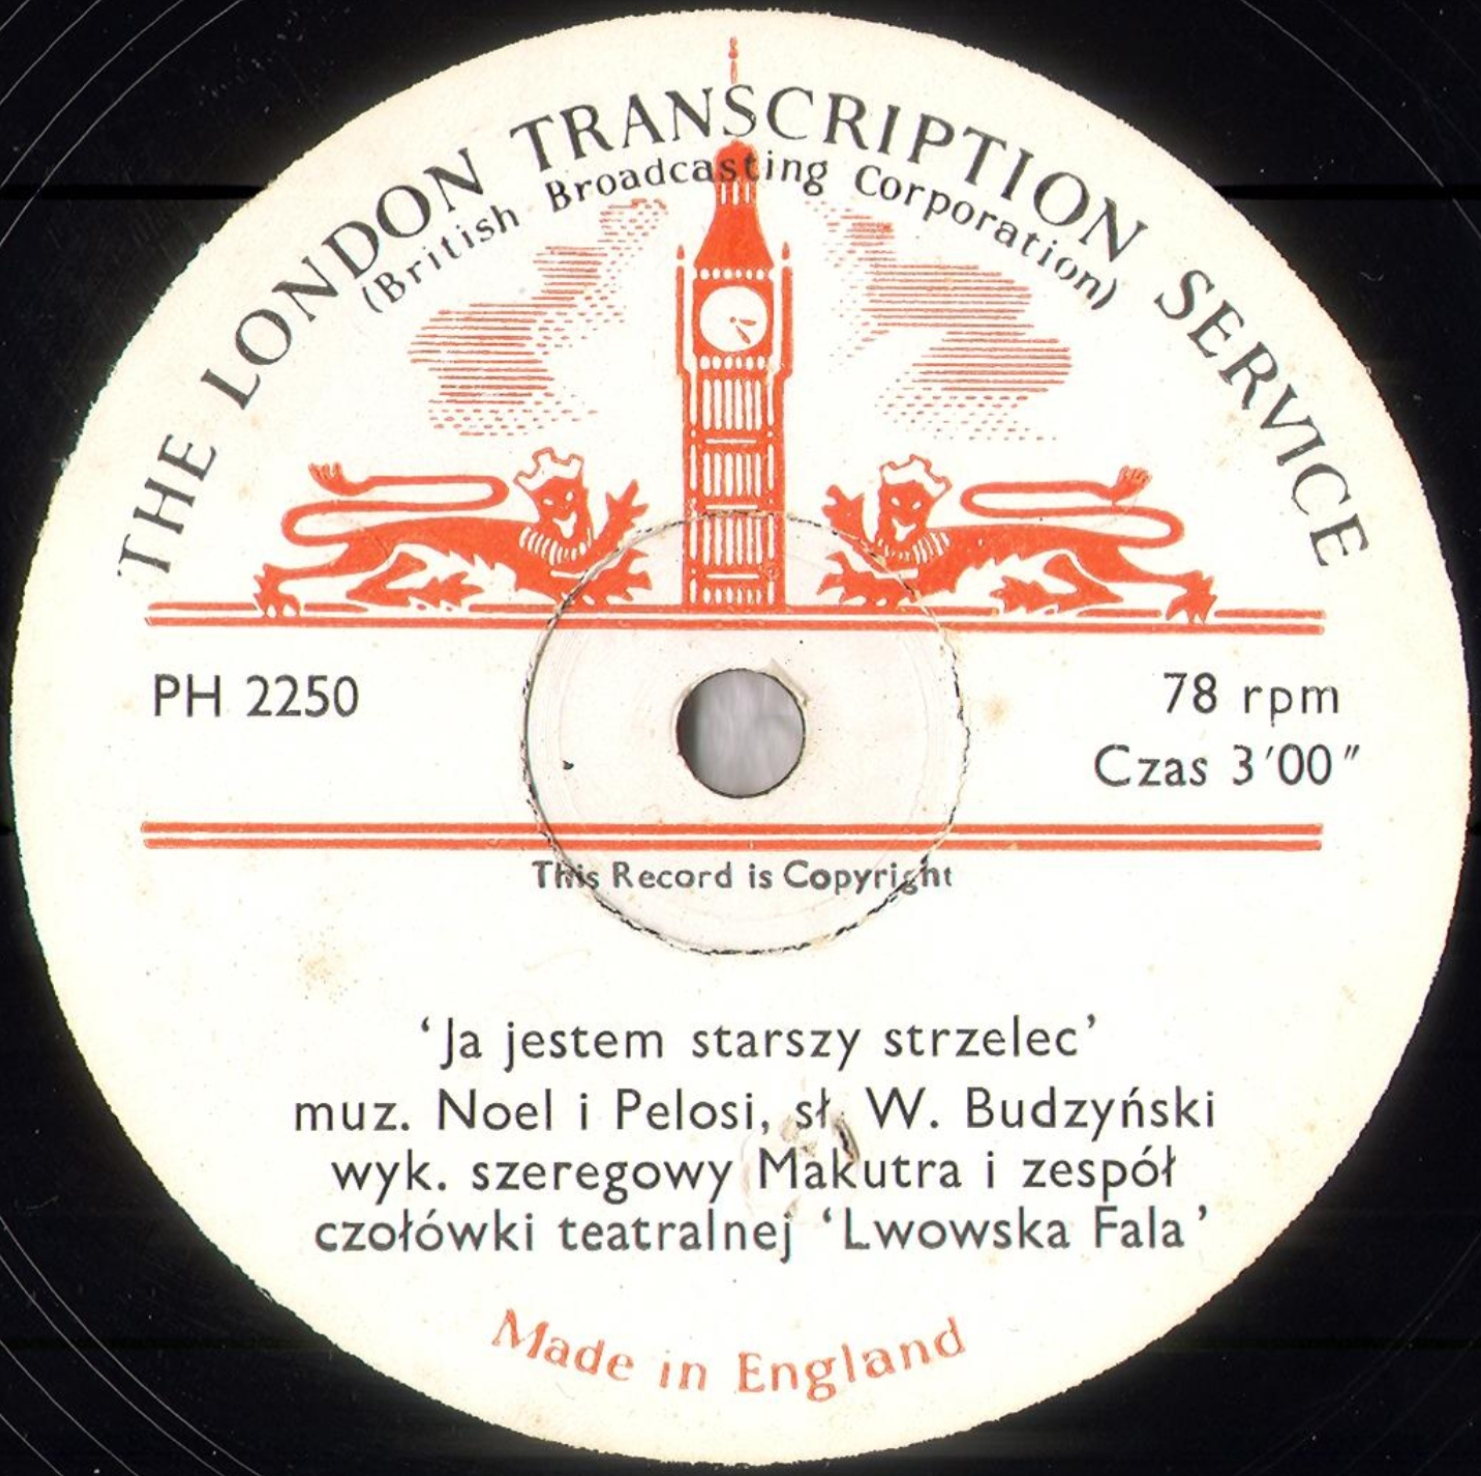 The London Transcription Service